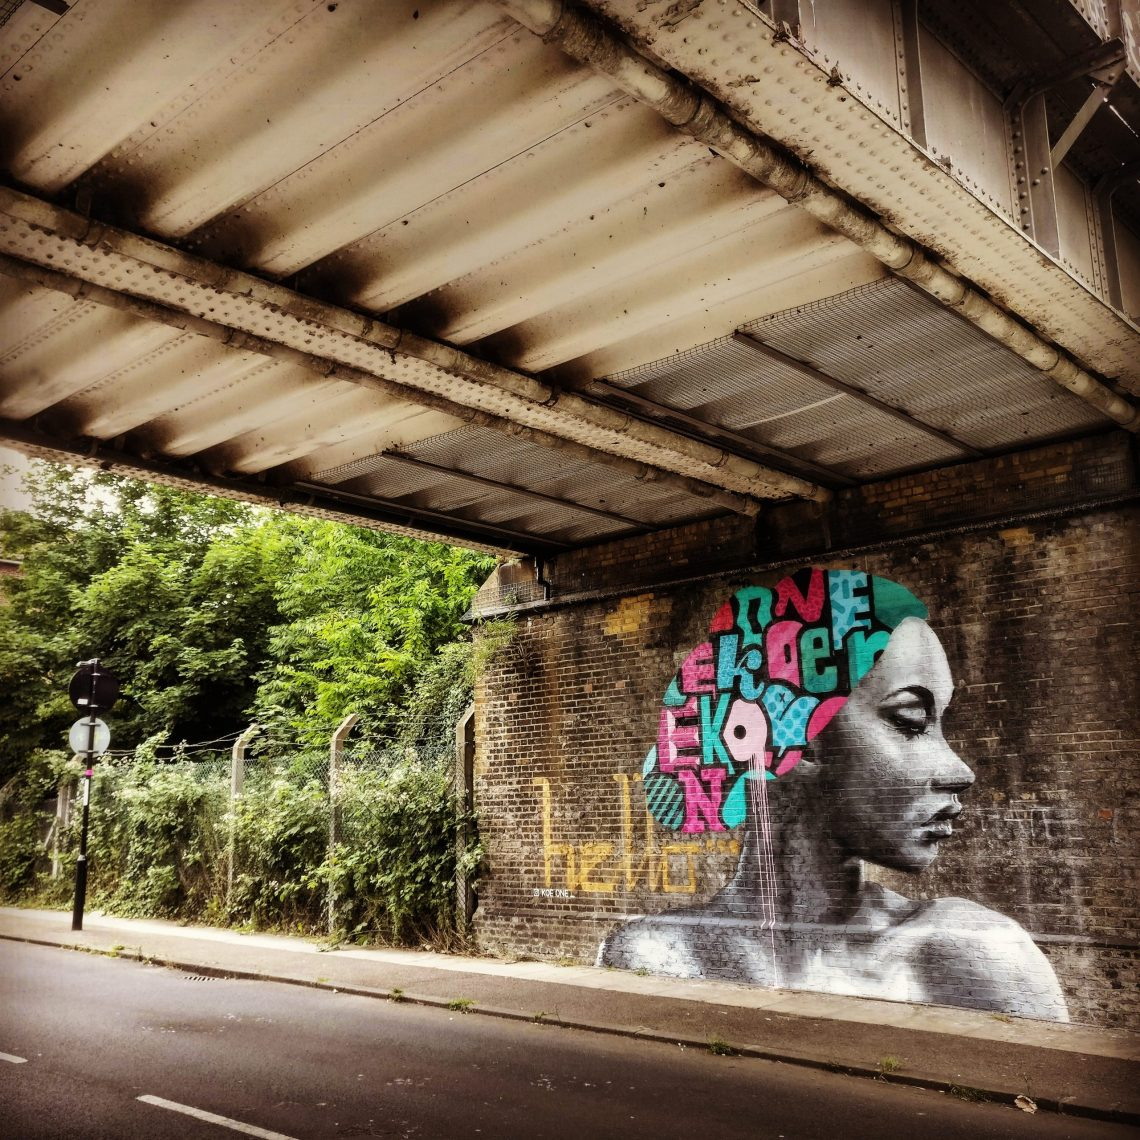 Mural by Koeone under the railway bridge on St Norbert Road. It was created for the 2017 Brockley Street art festival